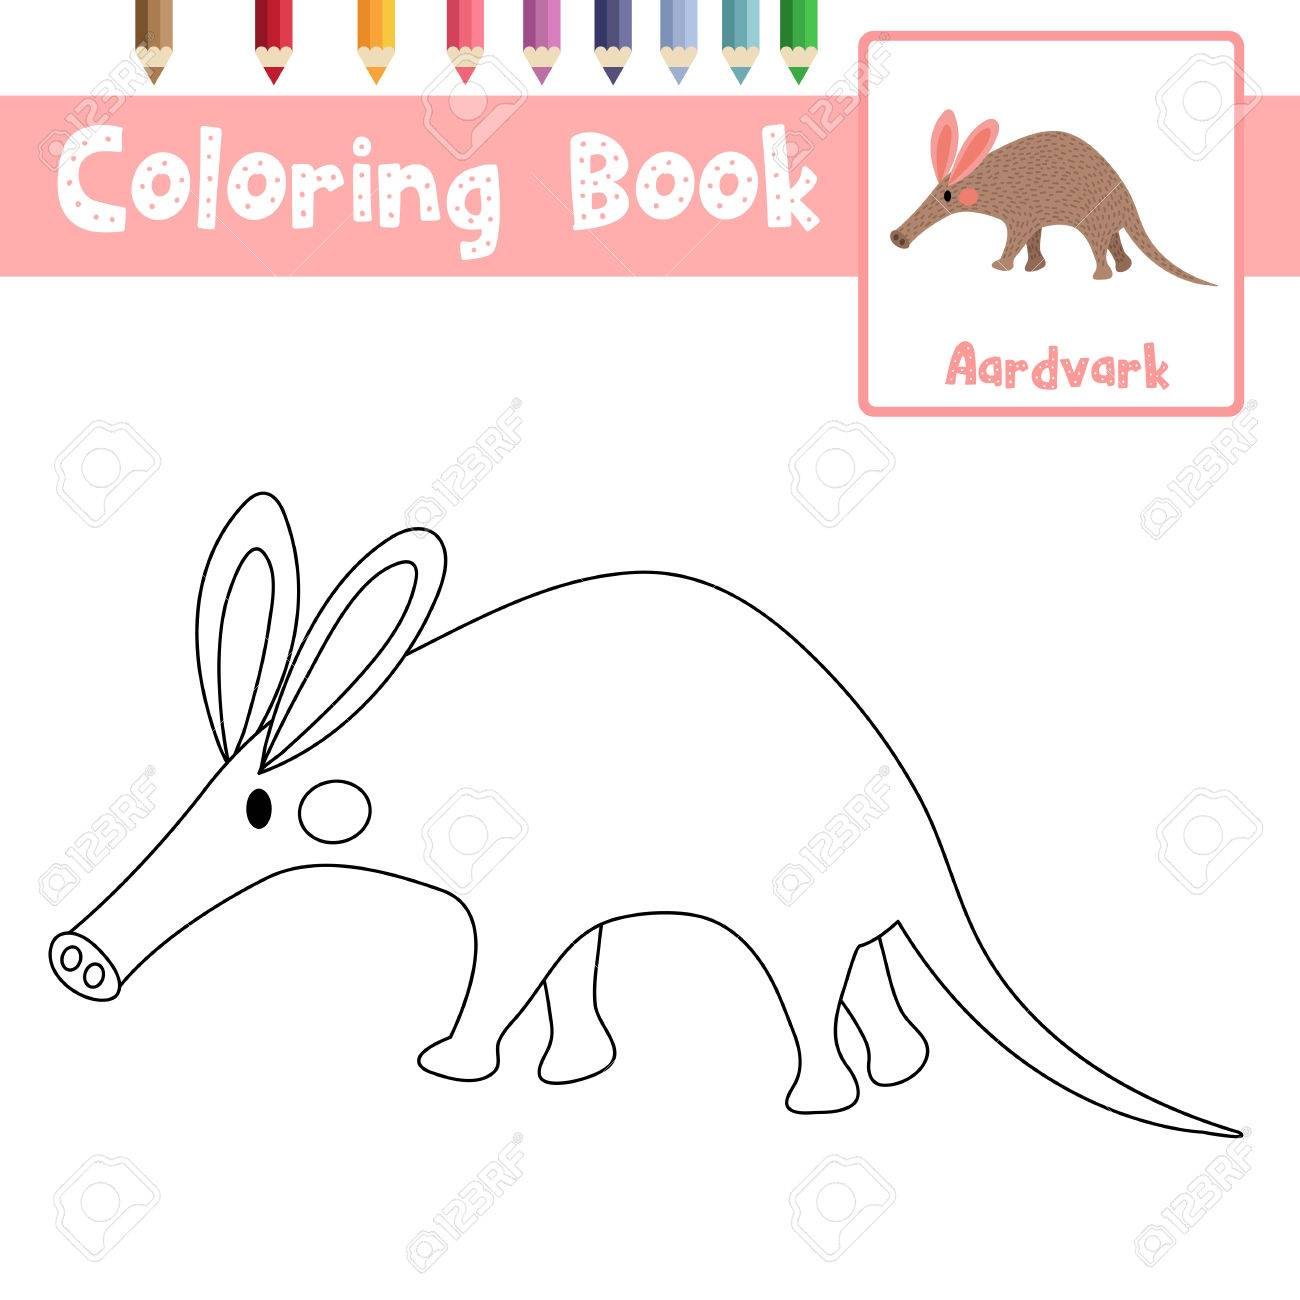 Coloring Page Of Aardvark Animals For Preschool Kids Activity Educational Worksheet Vector Illustration Stock